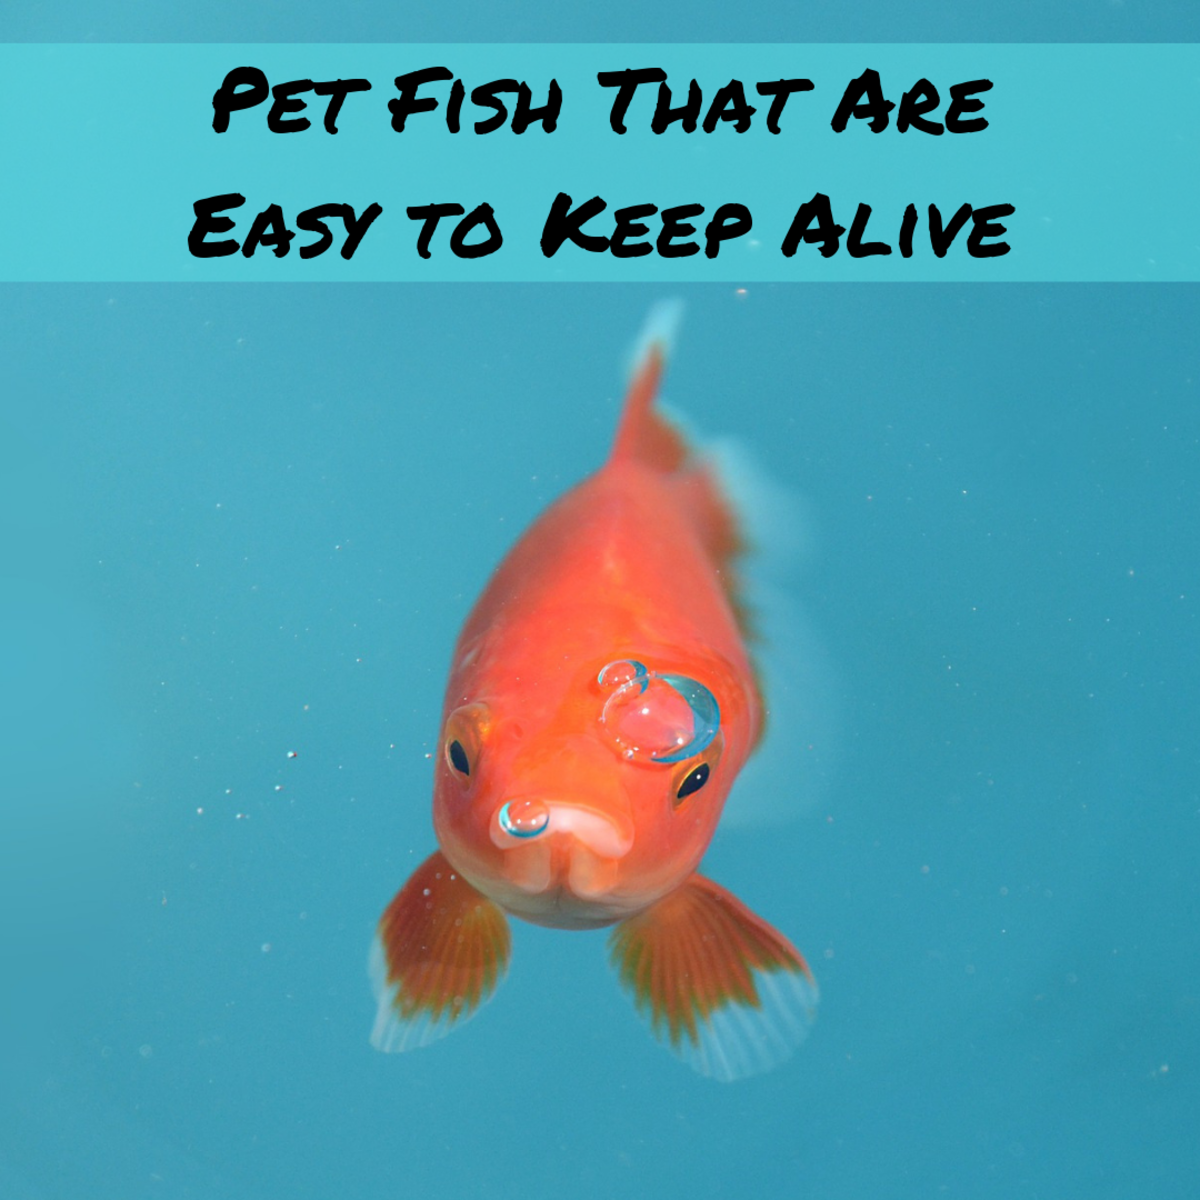 Are There Any Fish That Don't Die so Easily?